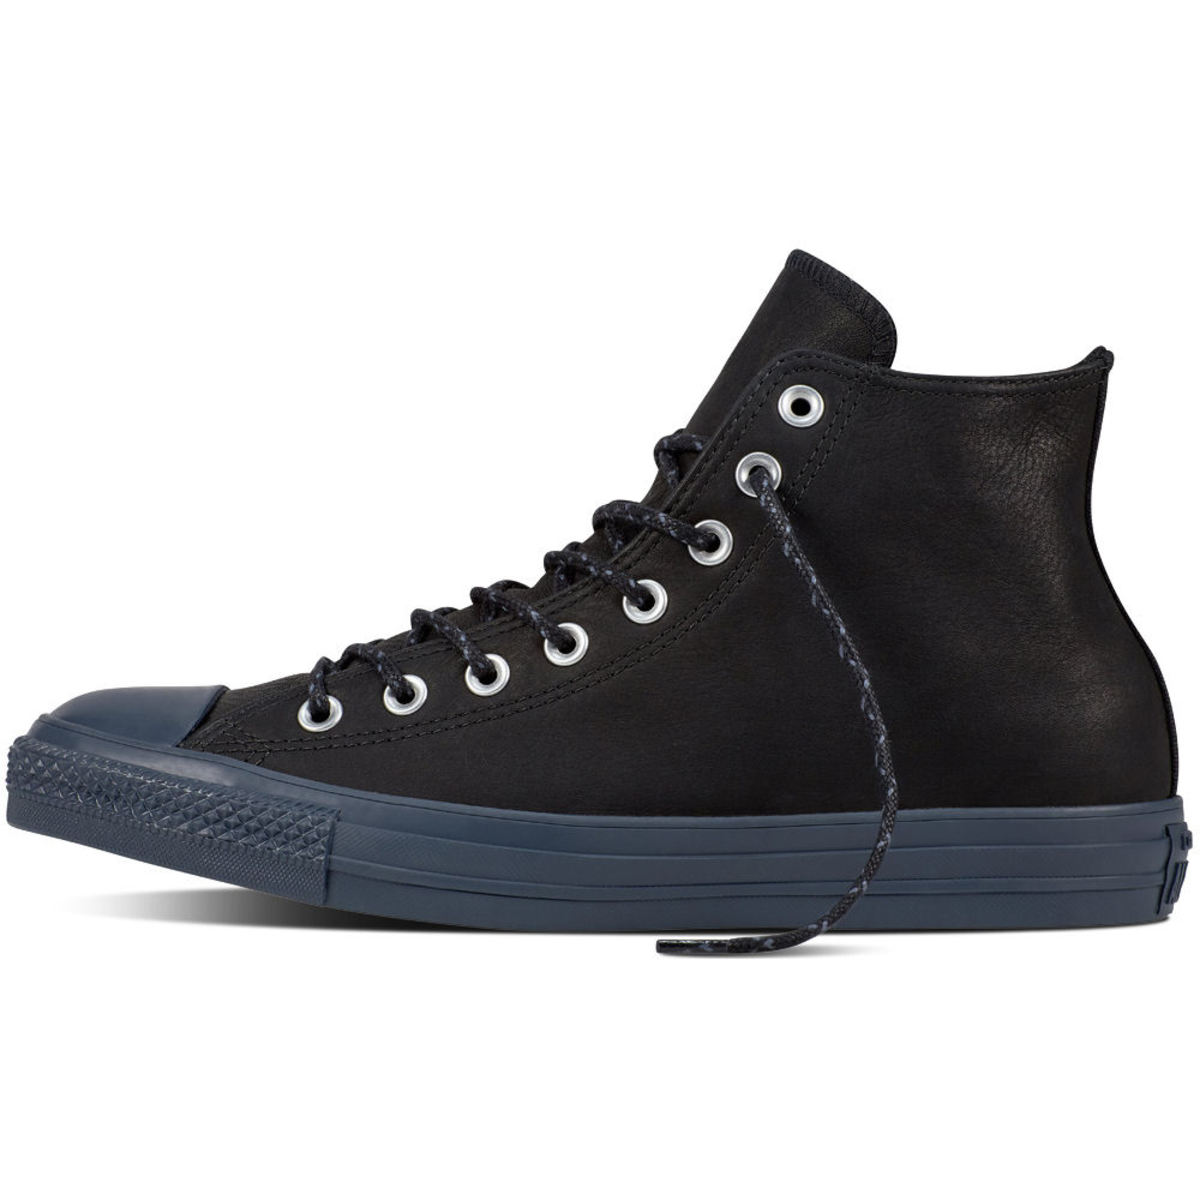 boty CONVERSE - Chuck Taylor All Star - C157514